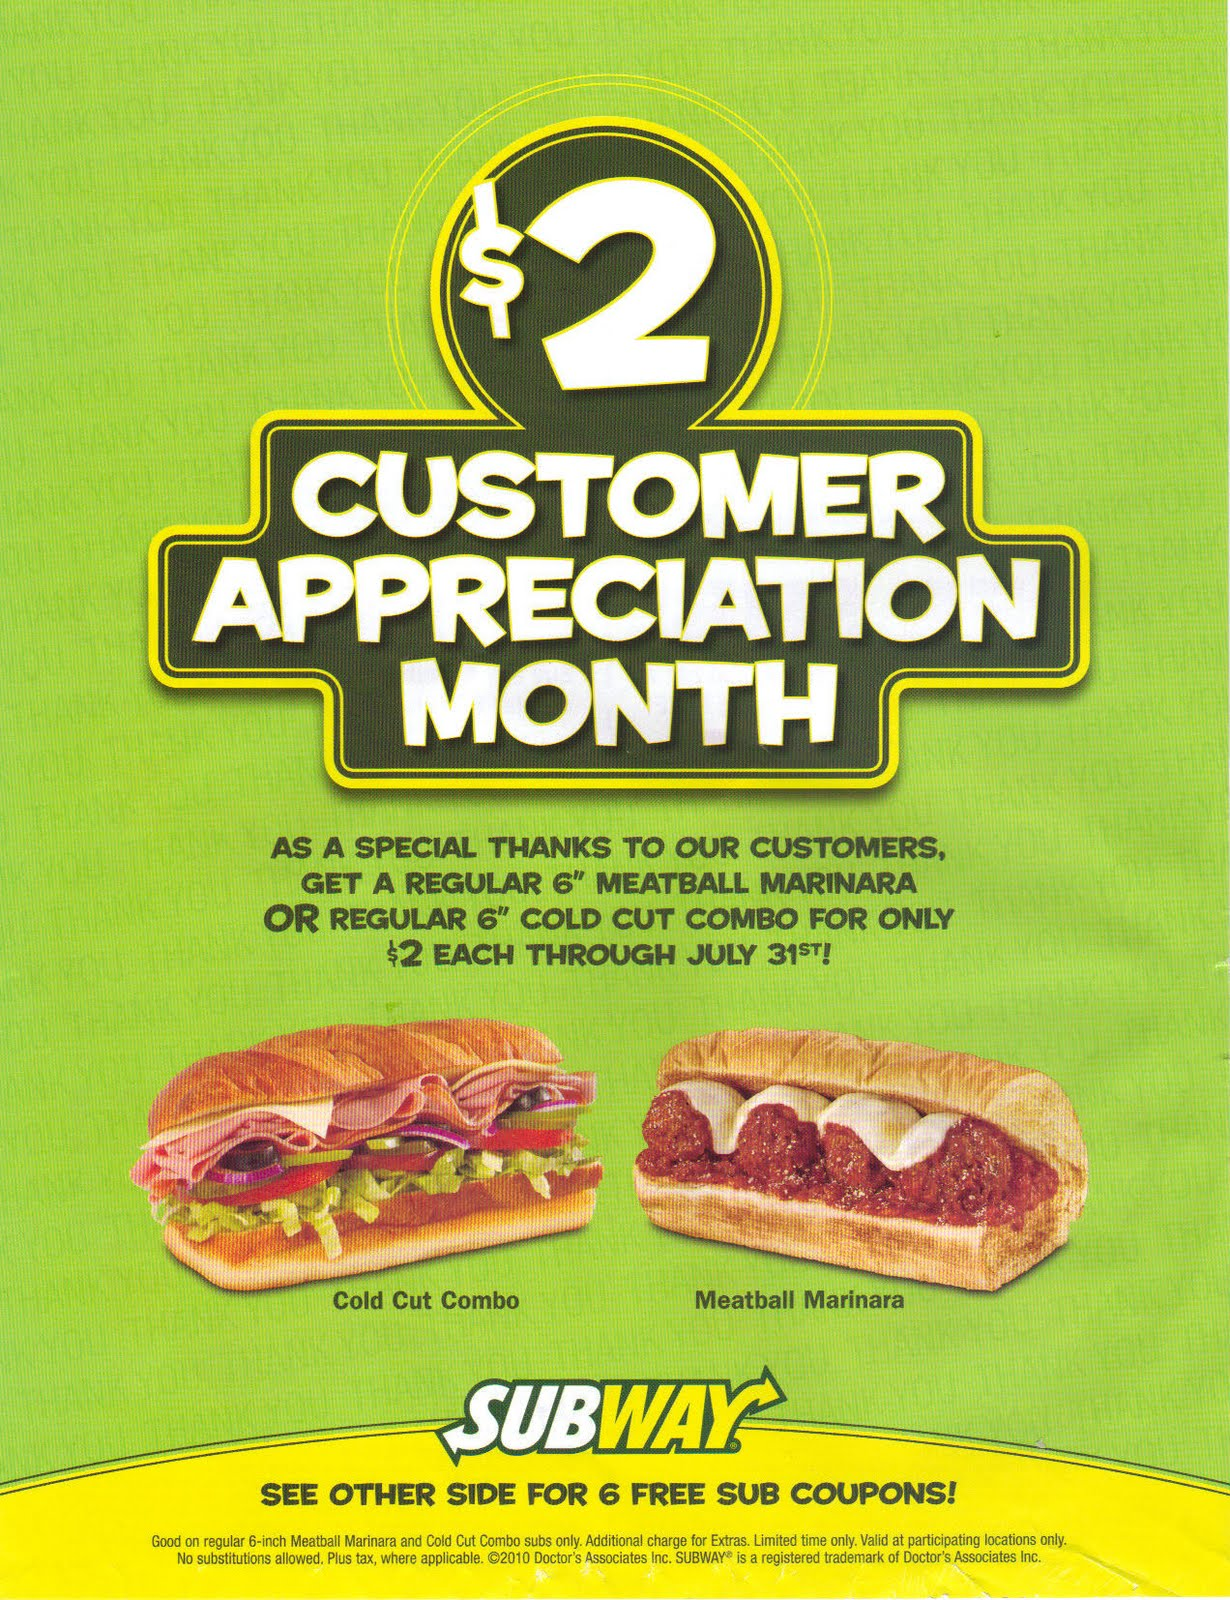 Before the franchise grew to over 43, locations in over countries worldwide, Subway owned a single submarine sandwich shop called Pete's Subway when it first opened in August The shop opened out of a need for Fred DeLuca to pay his way through medical school and out of a loan-spawned business deal from Dr. Peter Buck.5/5(1).